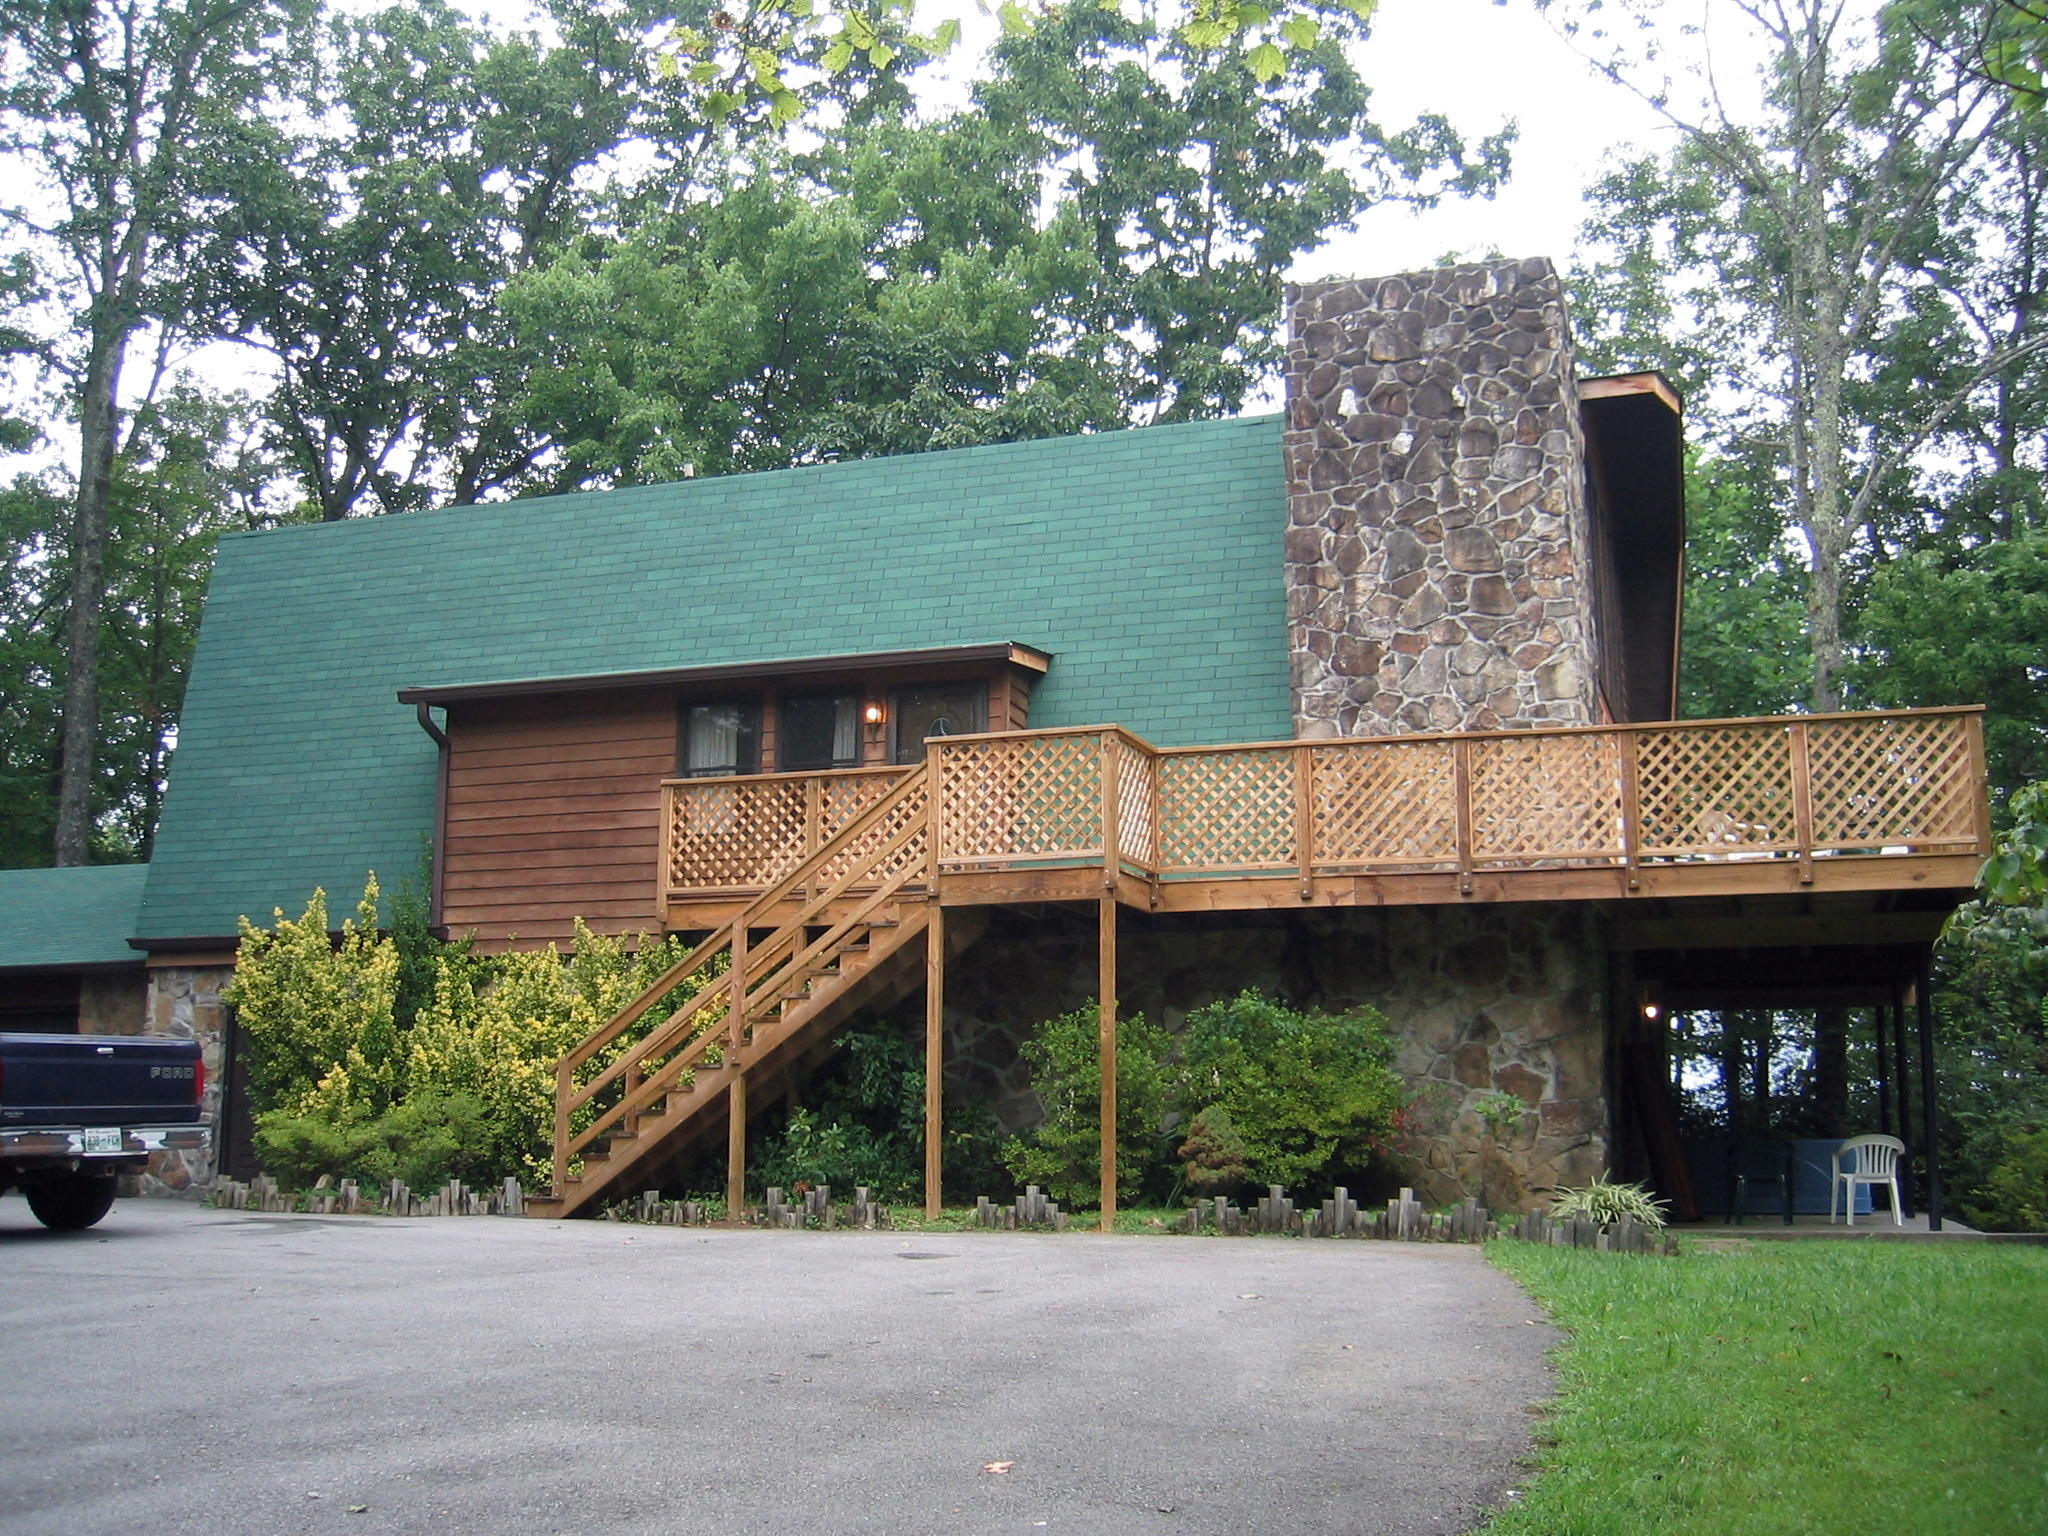 in rental log friendly reviews luxury rentals hotels affordable cabin tn the gatlburg gatlinburg cabins smokies cheap pet